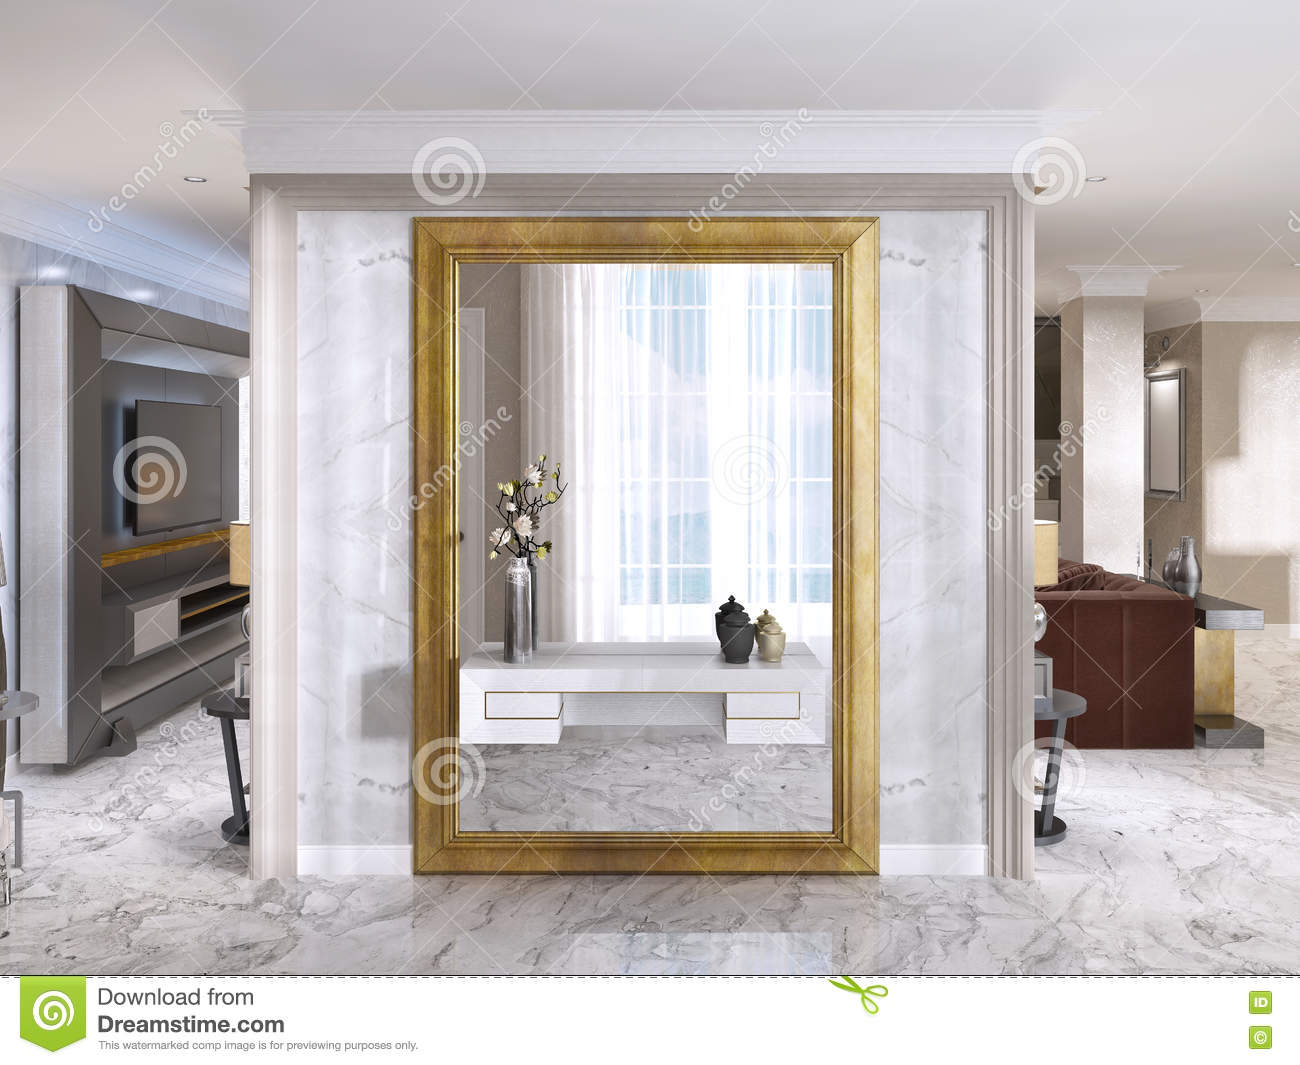 hall d 39 entr e luxueux d 39 art d co avec un grand miroir de concepteur illustration stock. Black Bedroom Furniture Sets. Home Design Ideas